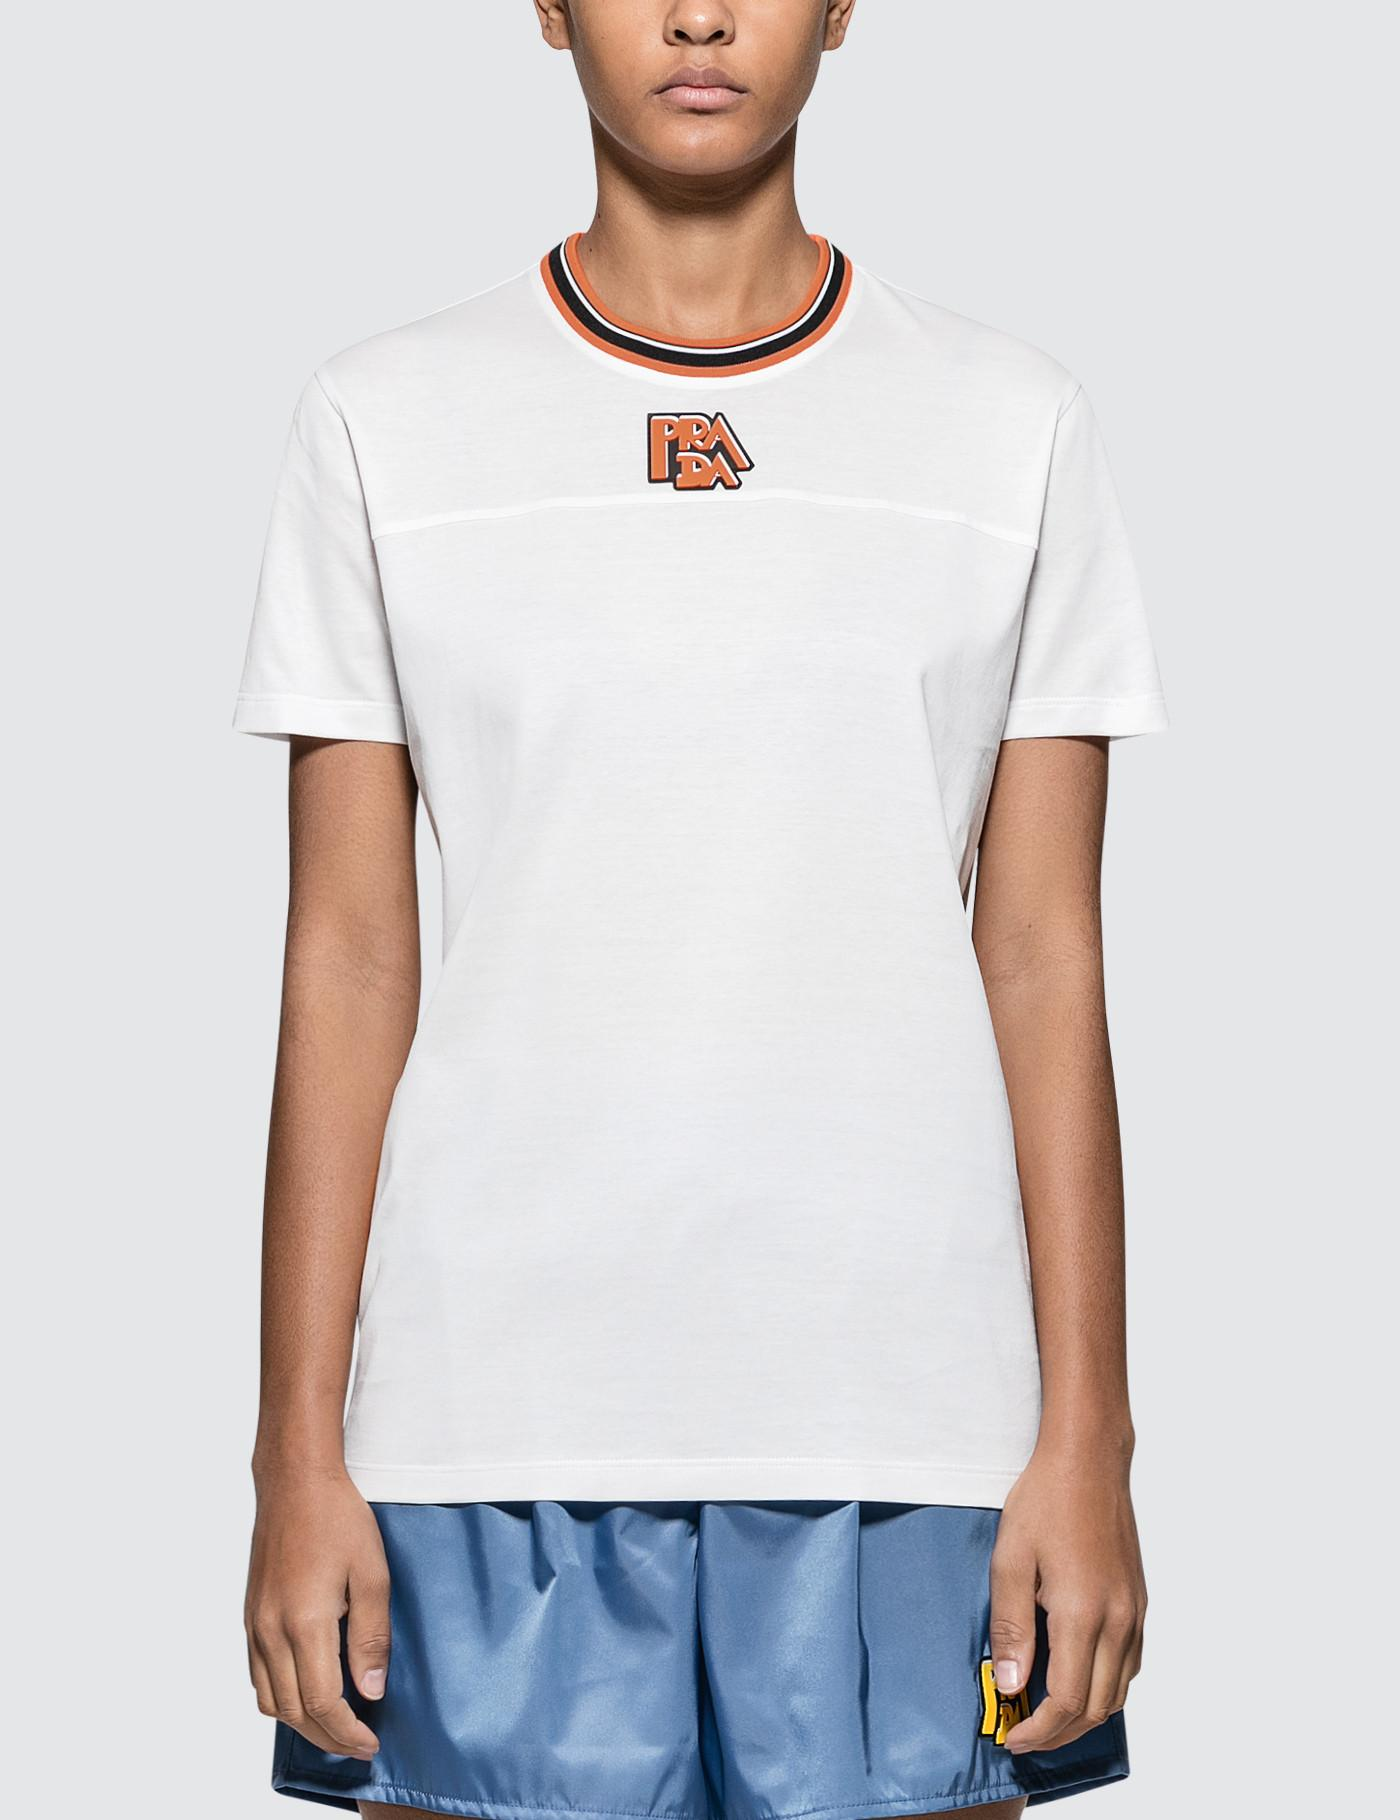 54c4ae147885 Lyst - Prada Logo Short Sleeve T-shirt in White